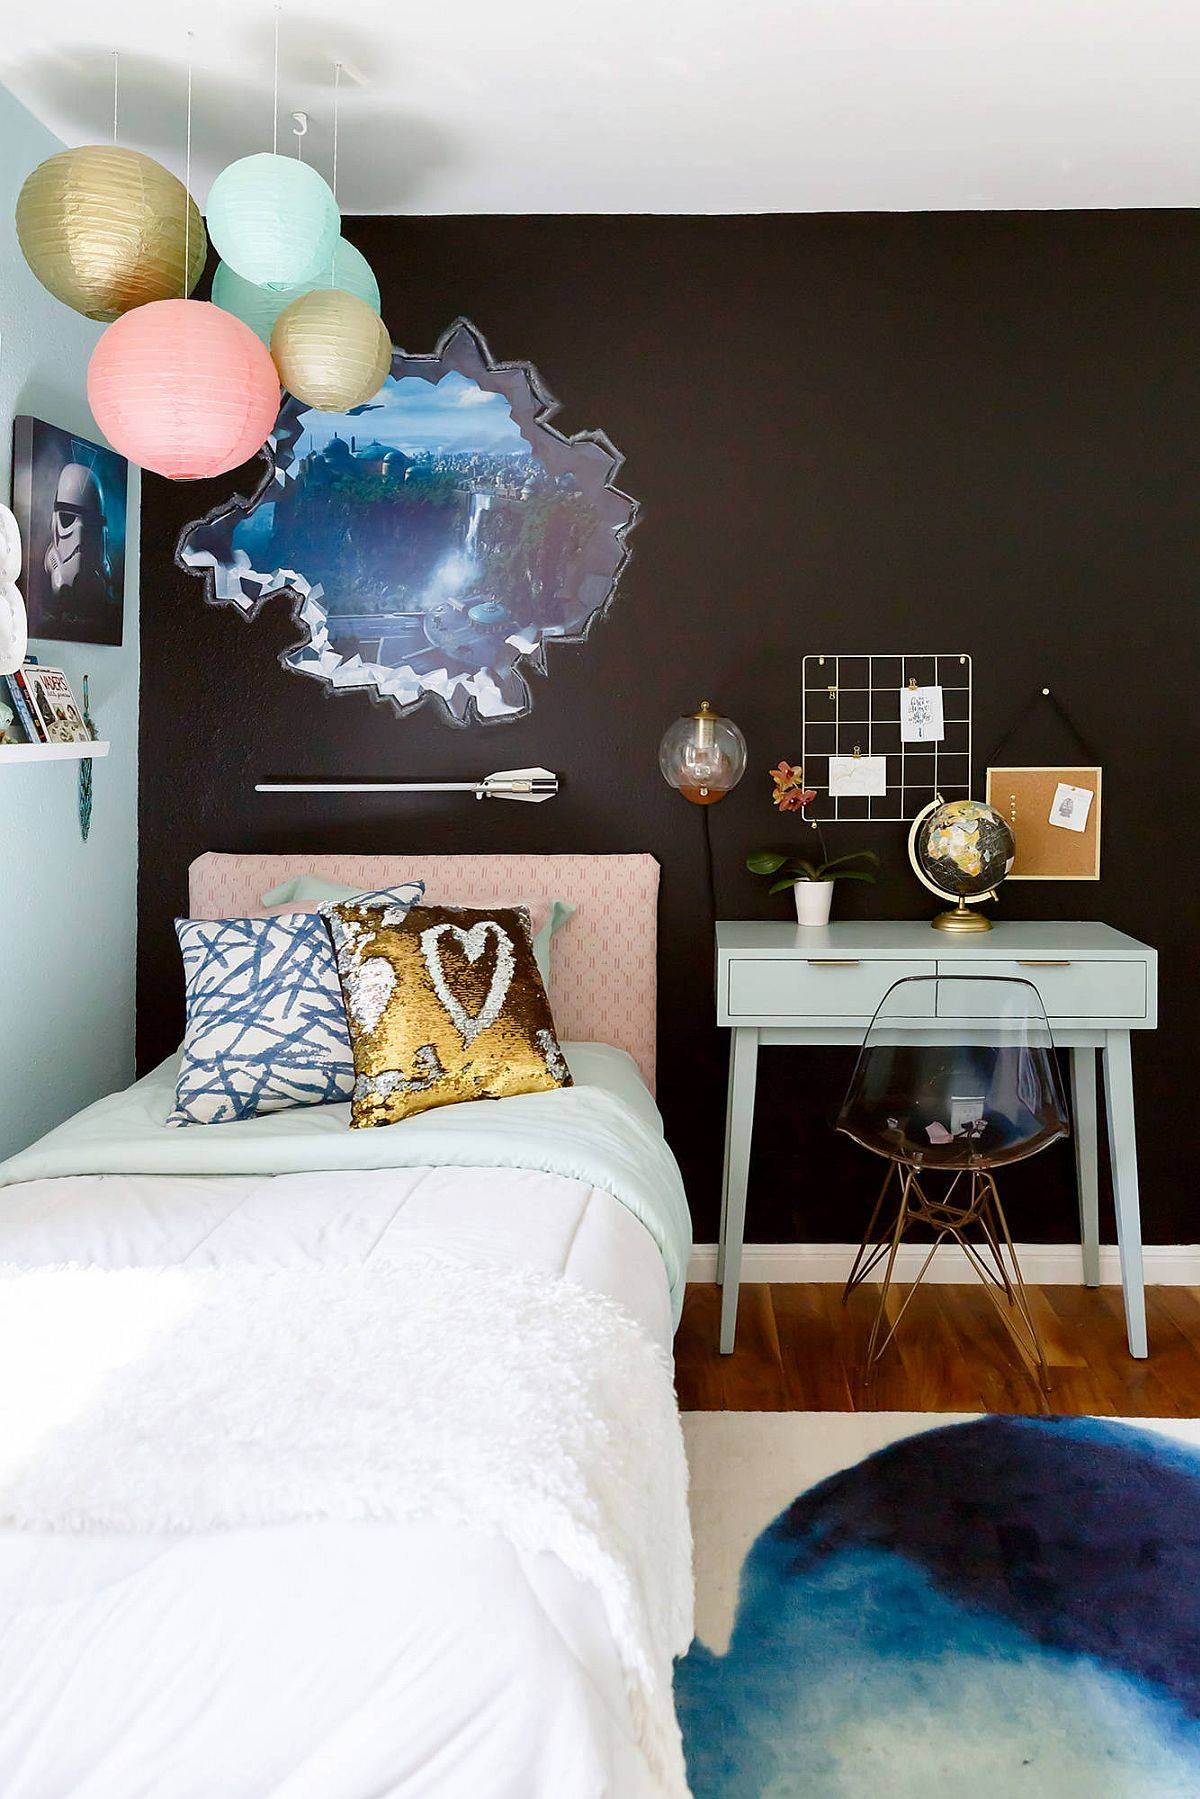 Creating-a-view-in-the-kids-room-when-there-is-none-78211